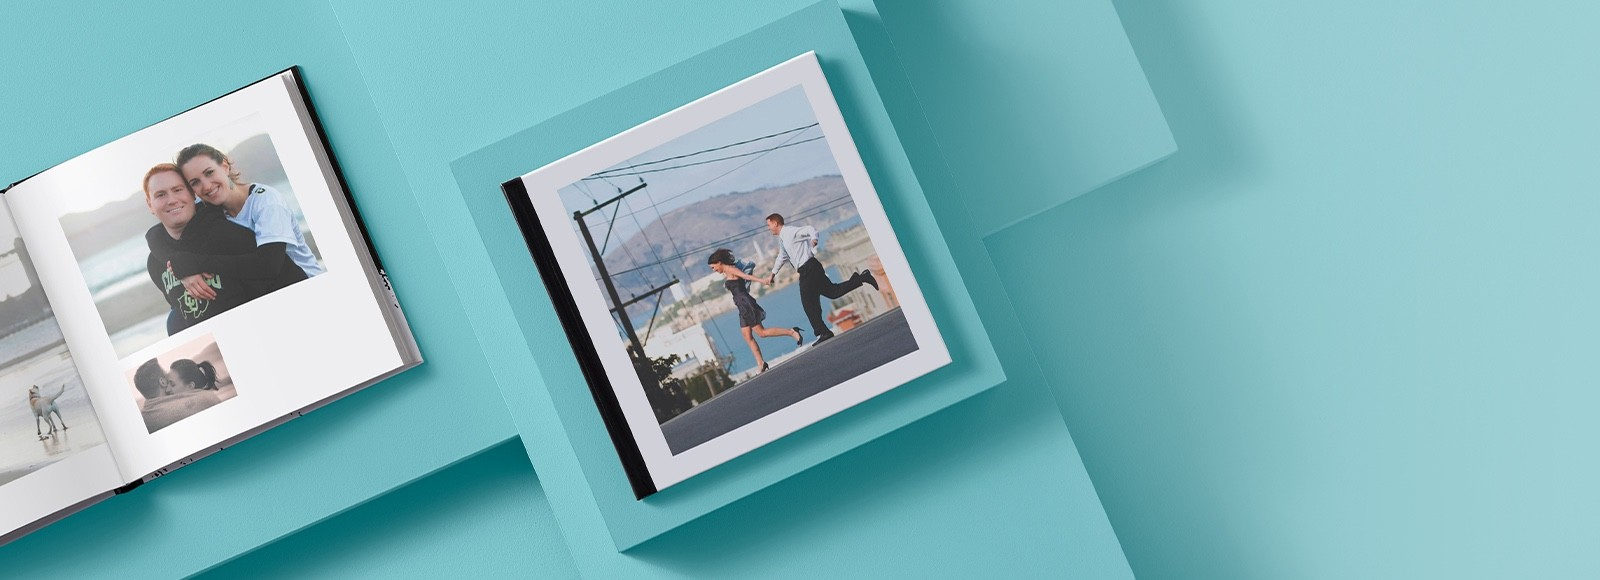 create custom photo books